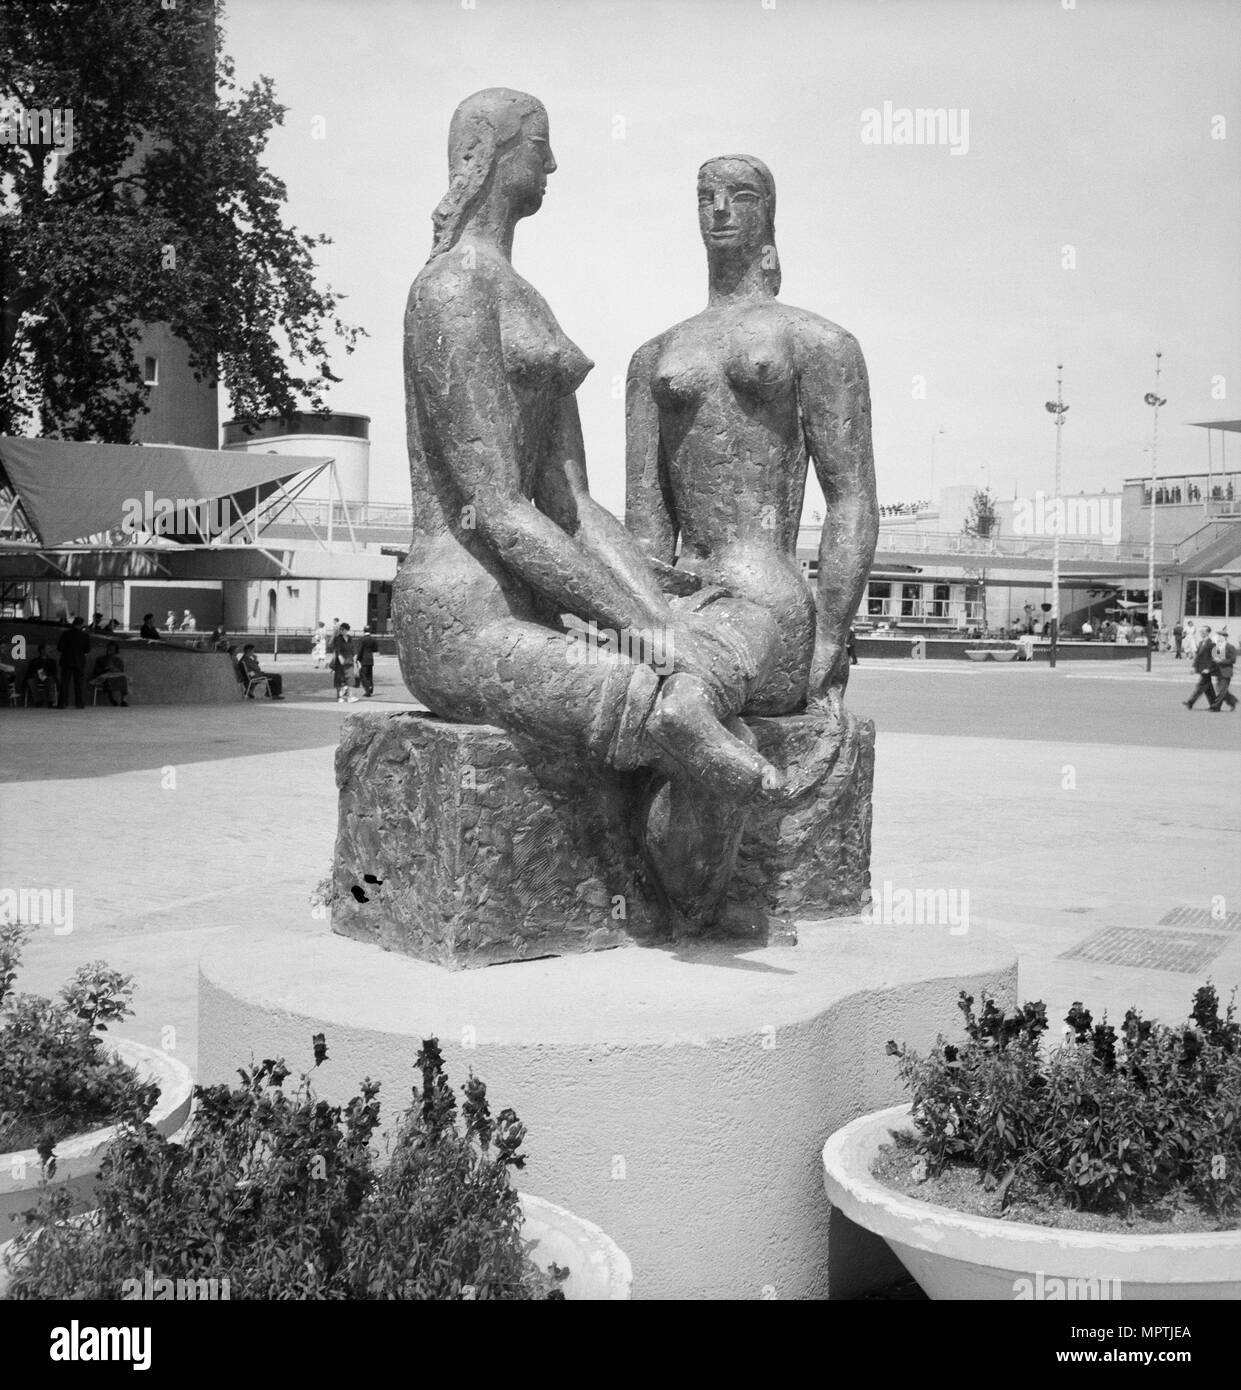 'London Pride', sculpure by Frank Dobson, Festival of Britain, South Bank, Lambeth, London, 1951. Artist: MW Parry. - Stock Image